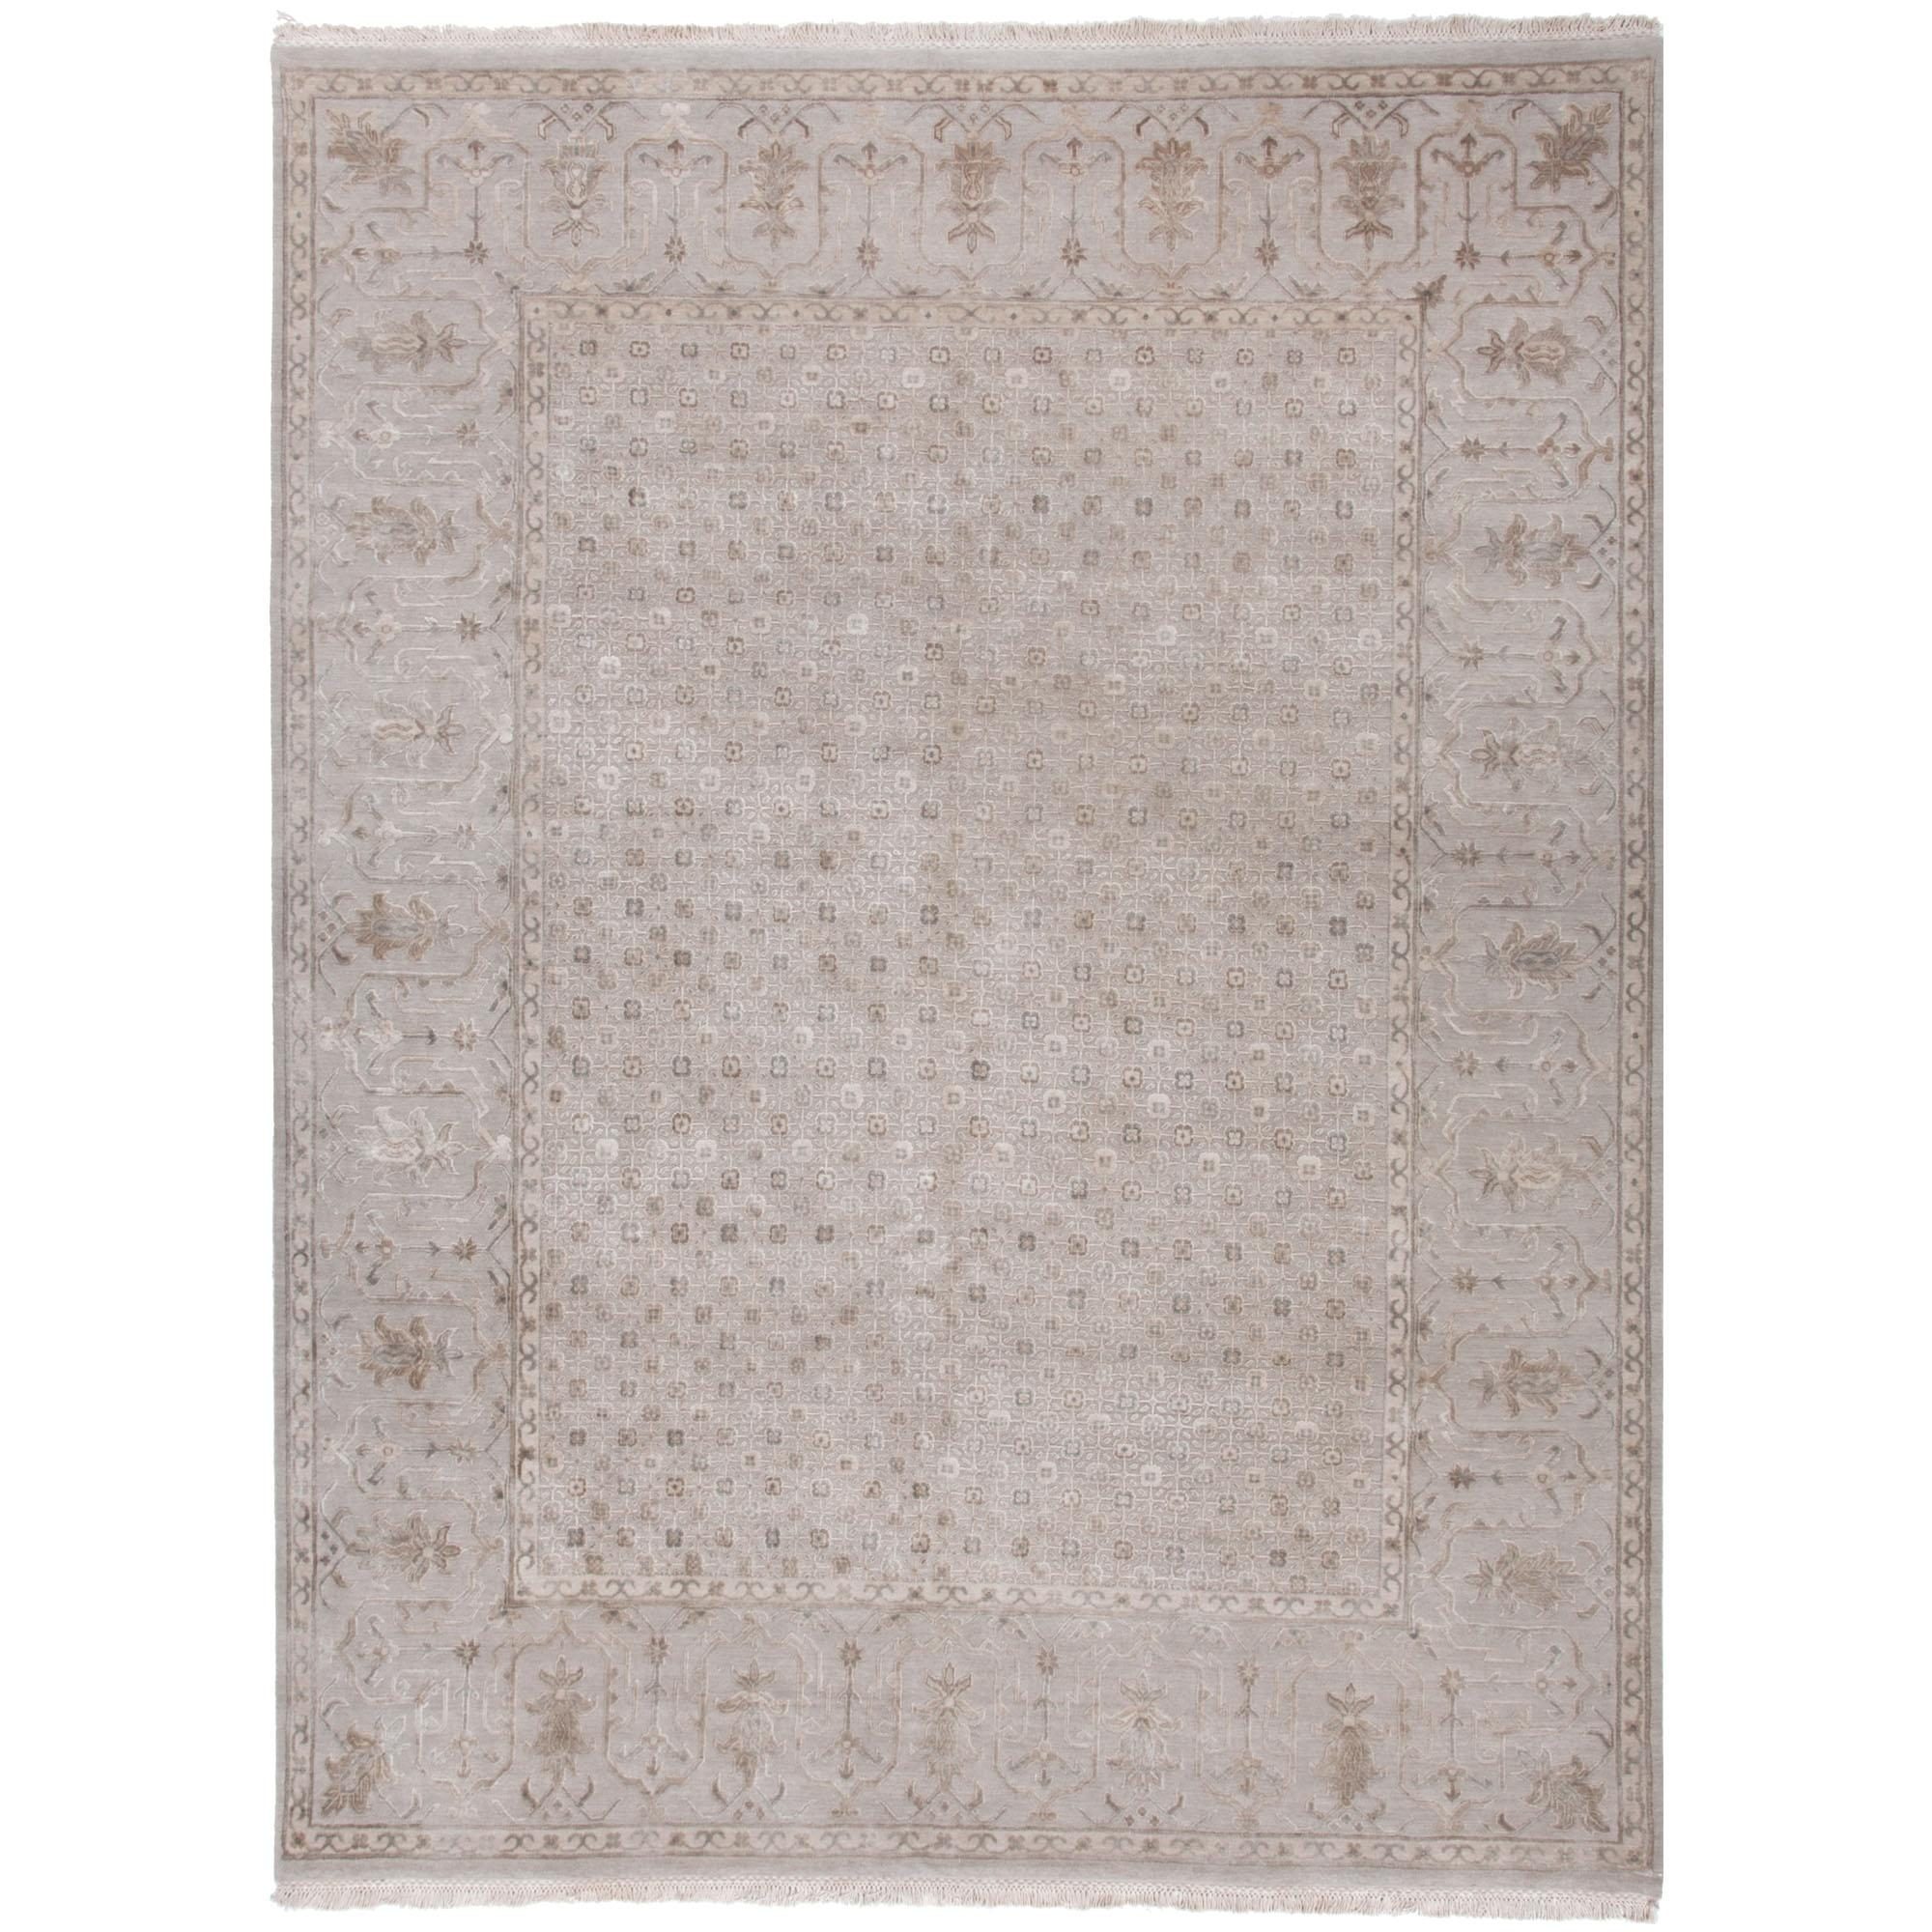 JAIPUR Rugs Connextion By Jenny Jones-signature 5 x 8 Rug - Item Number: RUG101353